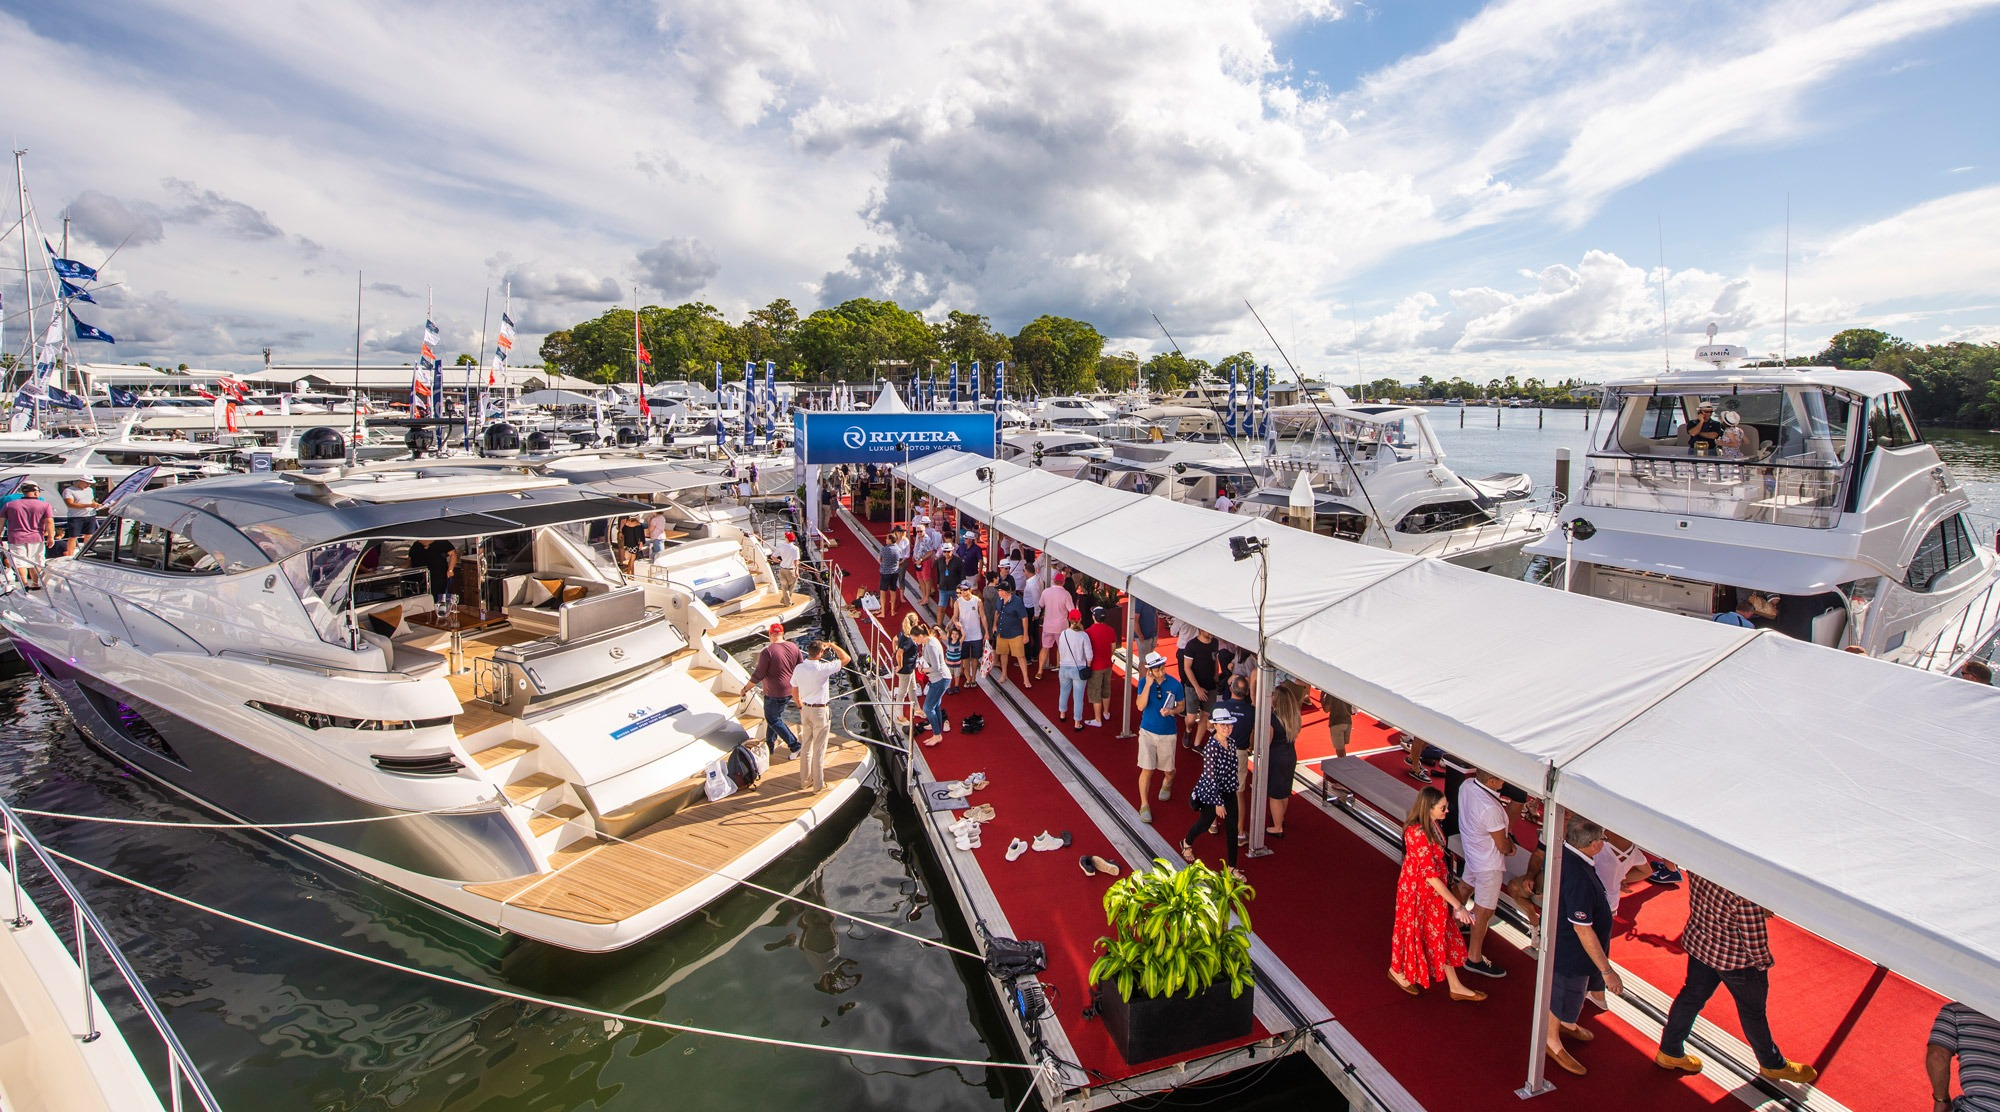 Riviera's largest display for 2019 captivates boating enthusiasts